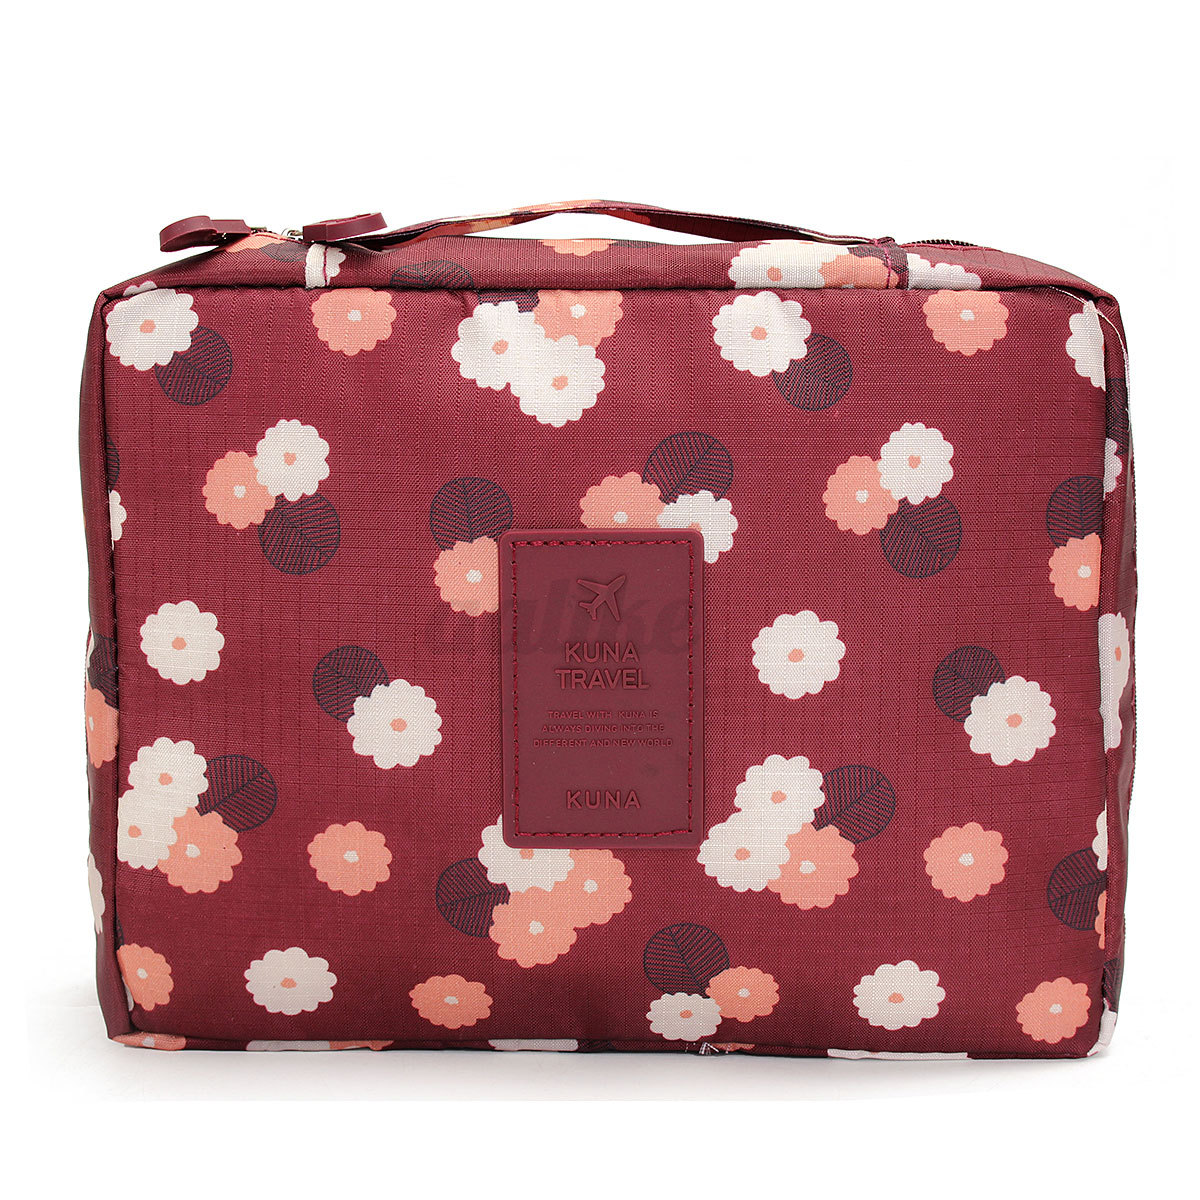 ... Cosmetic-Makeup-Bag-Toiletry-Case-Wash-Organizer-Storage-Hanging-Pouch